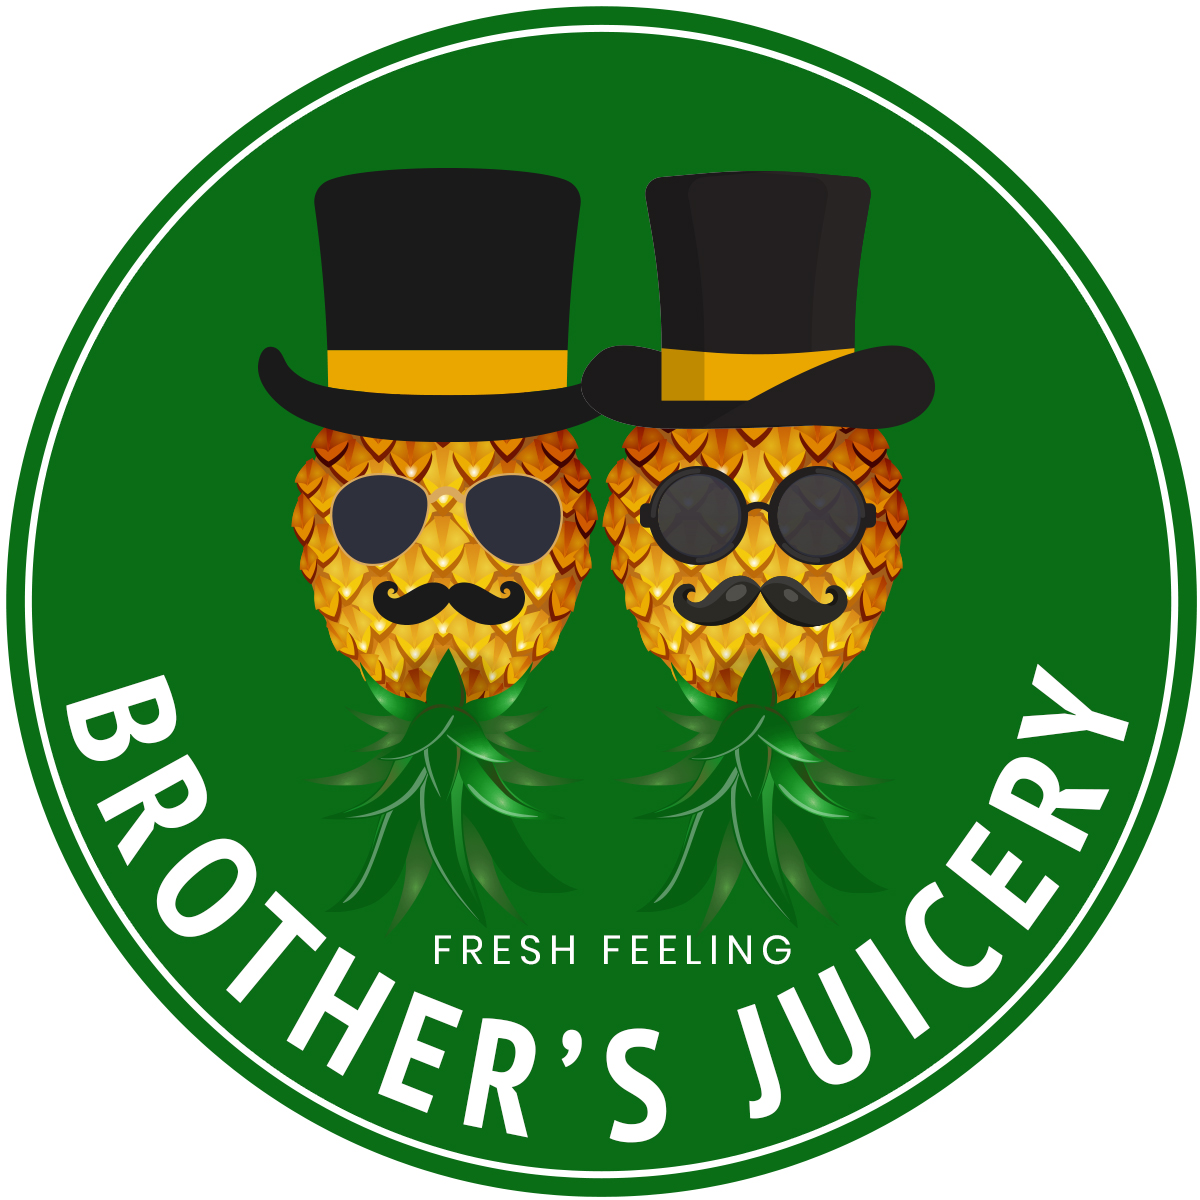 BROTHERS JUICERY